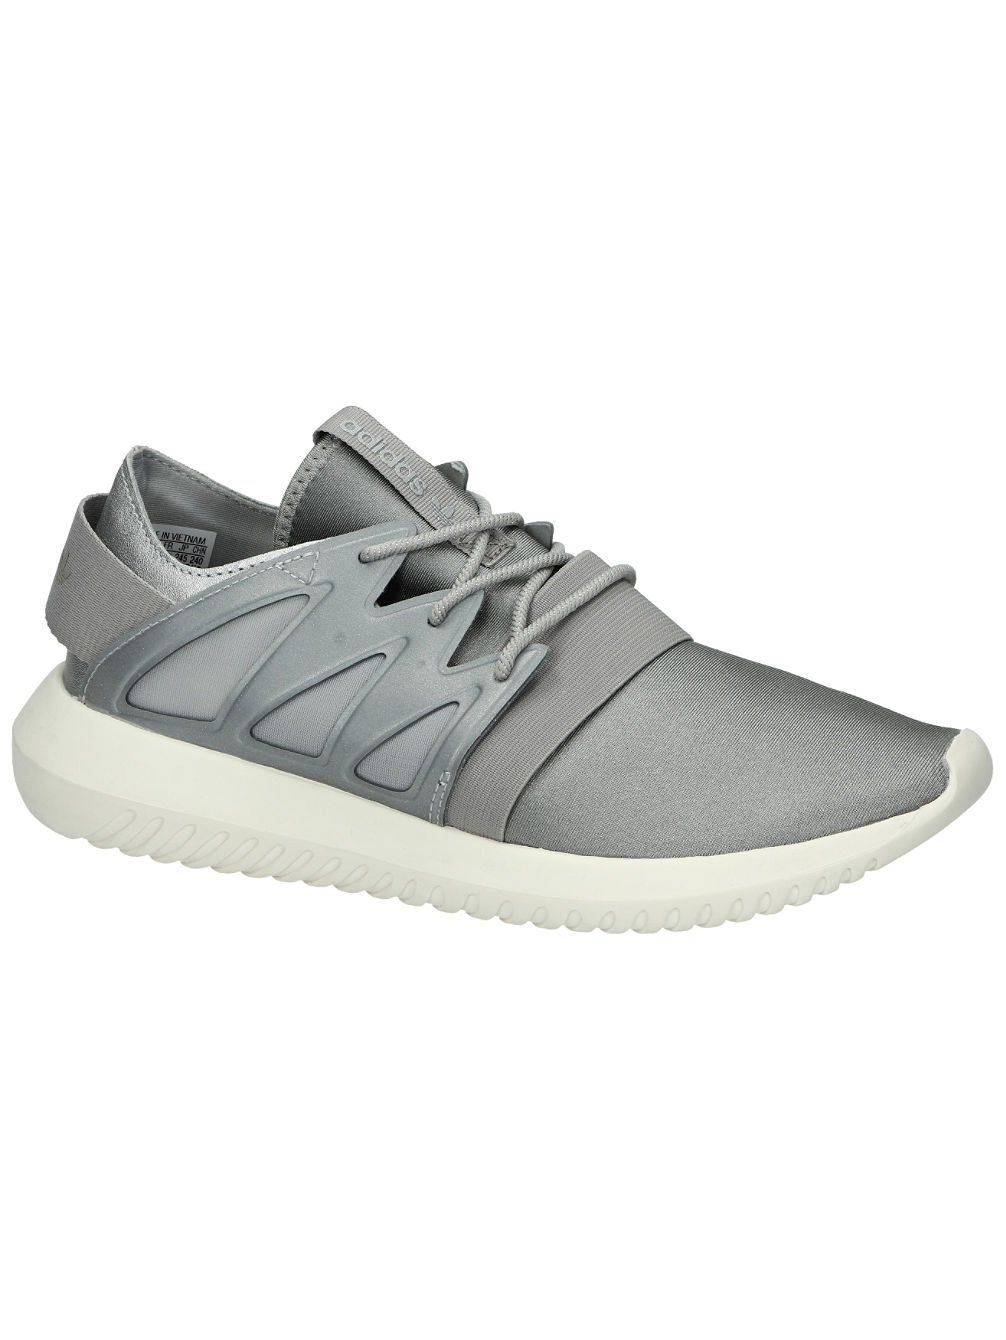 new styles 4360a 8d6b2 adidas Originals Tubular Viral Sneakers